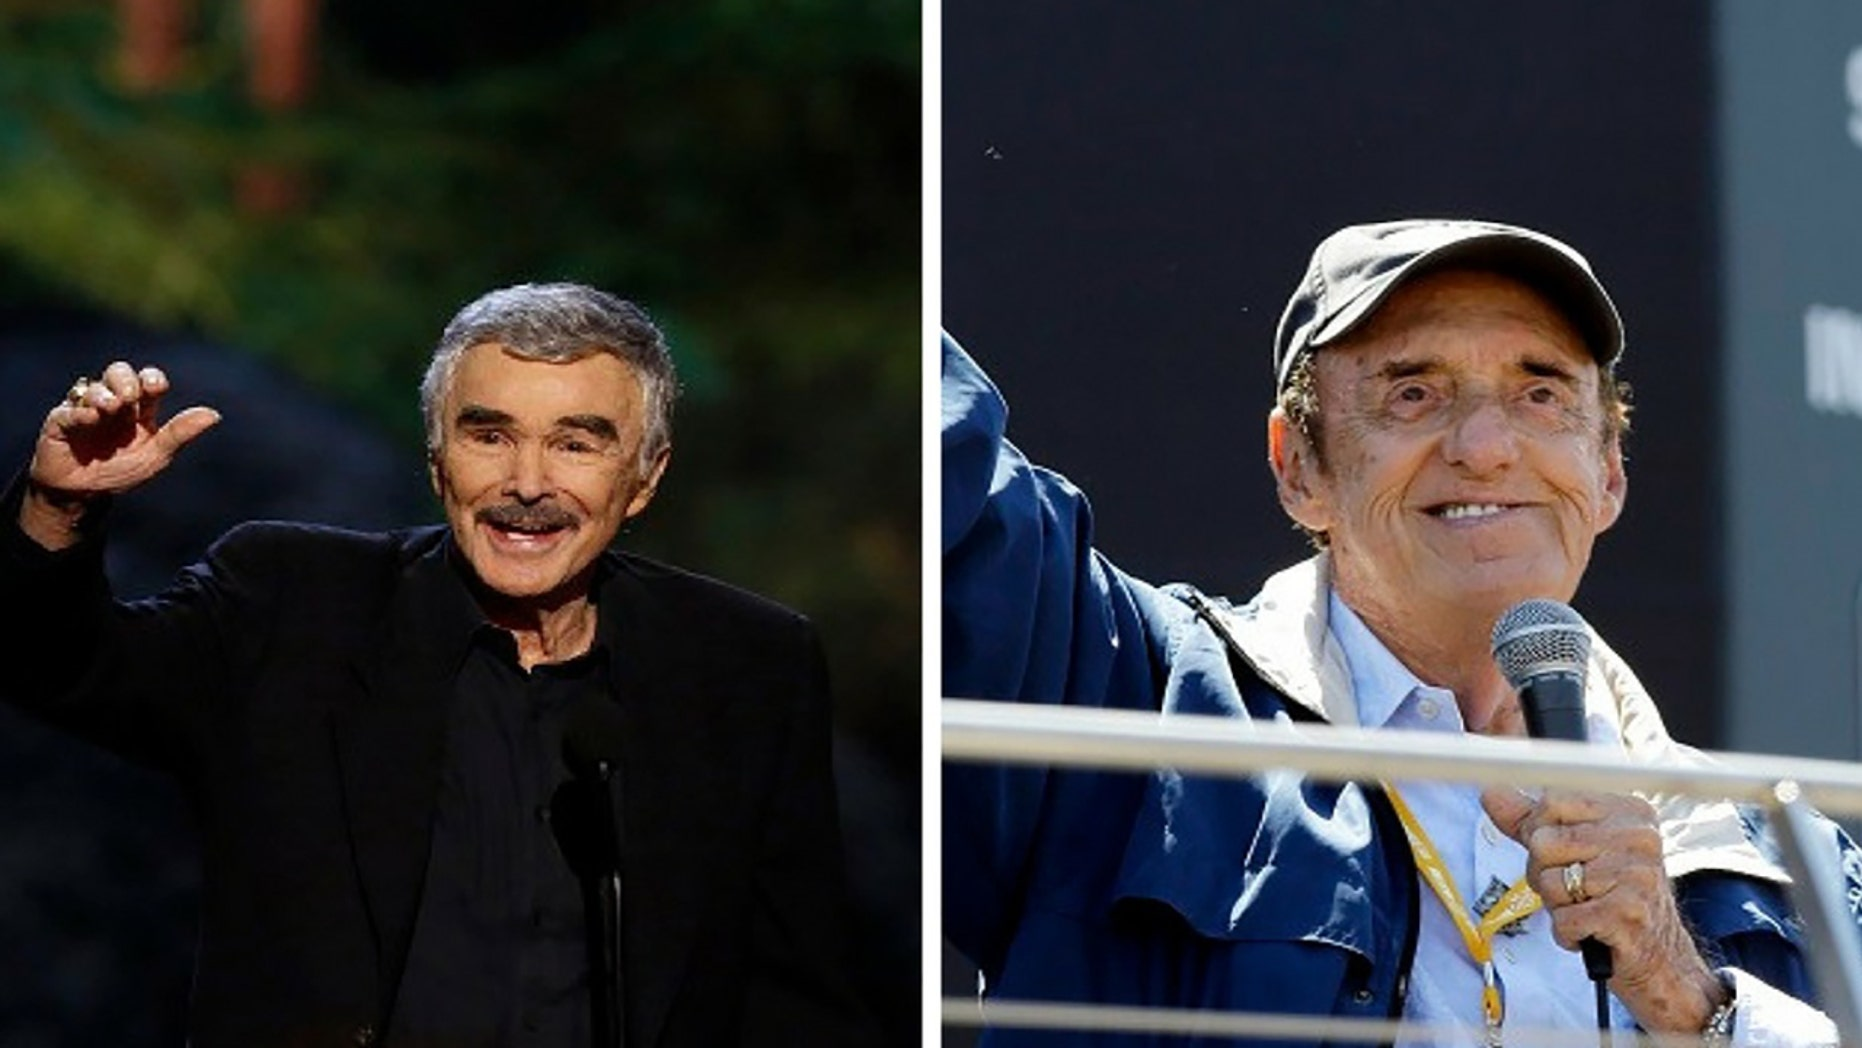 Jim Nabors Pal Burt Reynolds Speaks Out I Loved Him And So Did Millions Of Others Fox News Jim nabors, star of 'gomer pyle,' dies at 87. jim nabors pal burt reynolds speaks